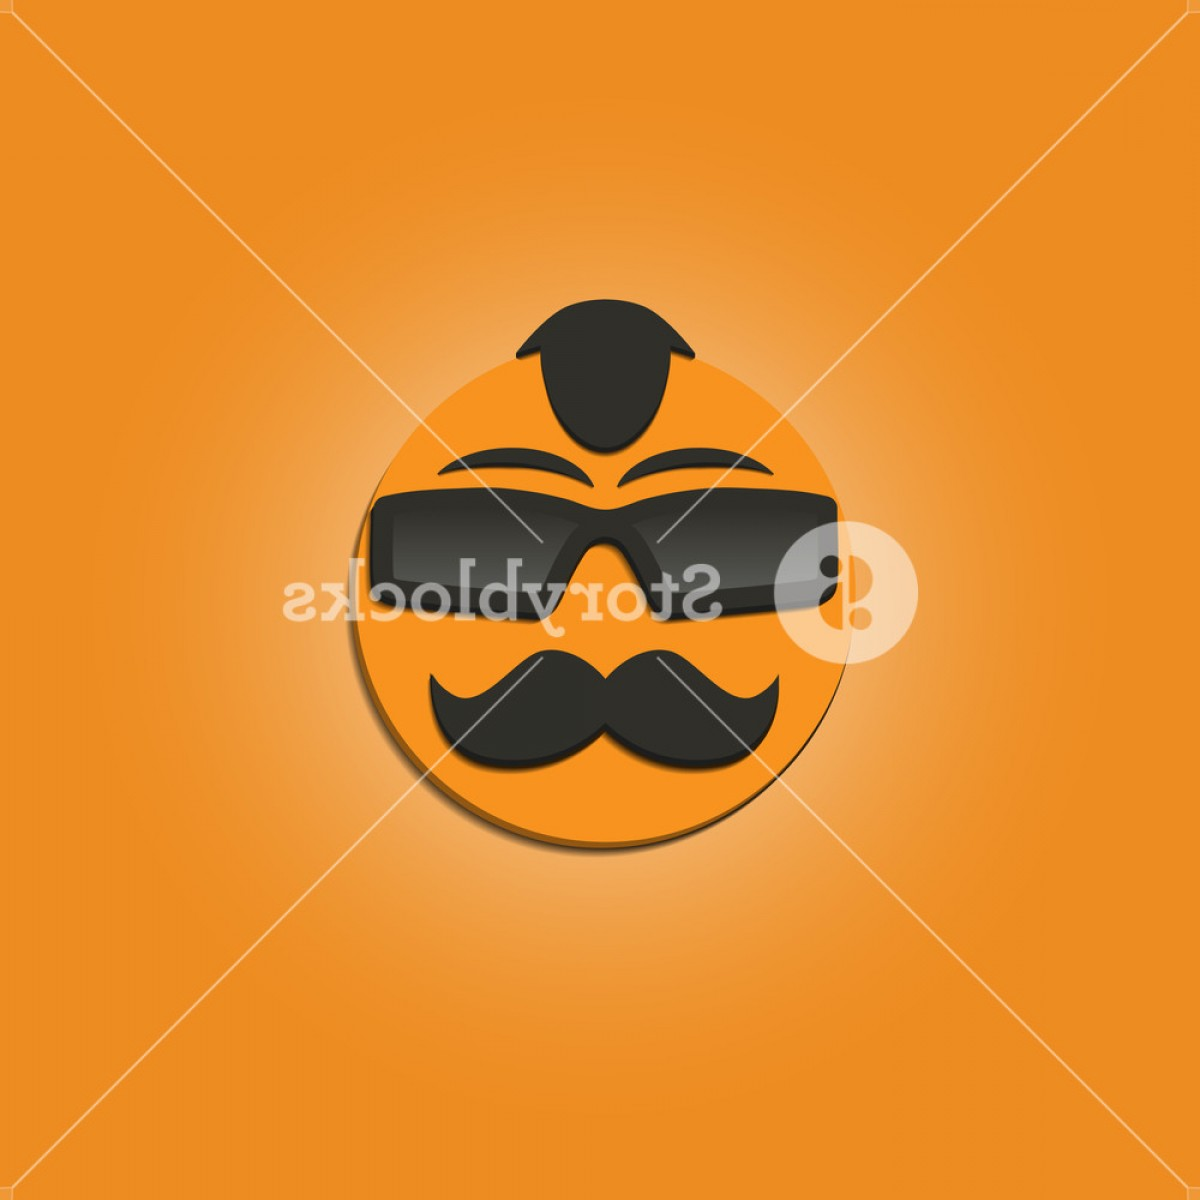 Mustache Face Vector: Funny Face With A Mustache And Sunglasses On Yellow Background Vector Illustrations Sqybgjgfgsl